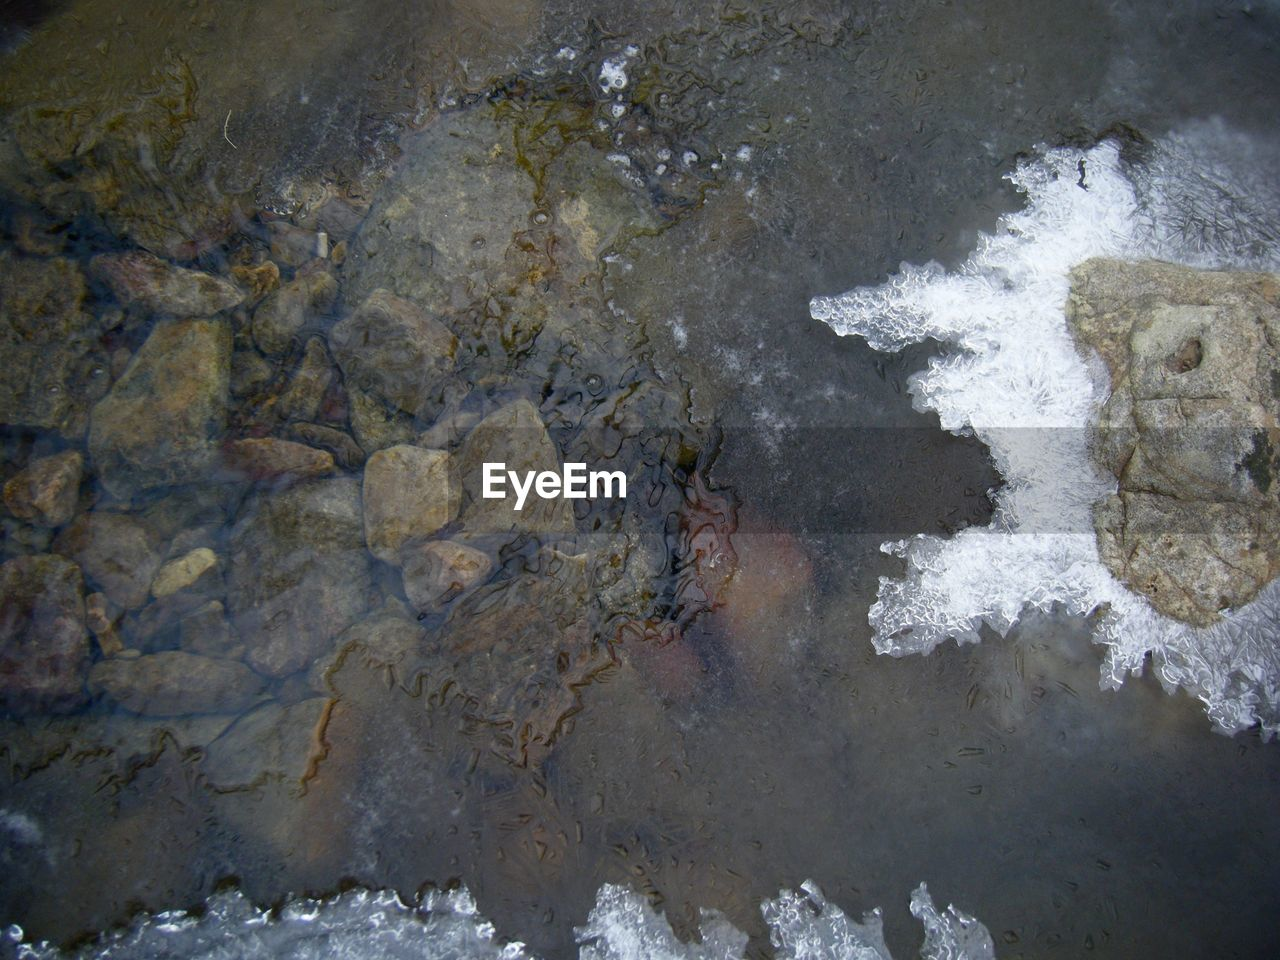 water, day, high angle view, outdoors, no people, nature, oil spill, close-up